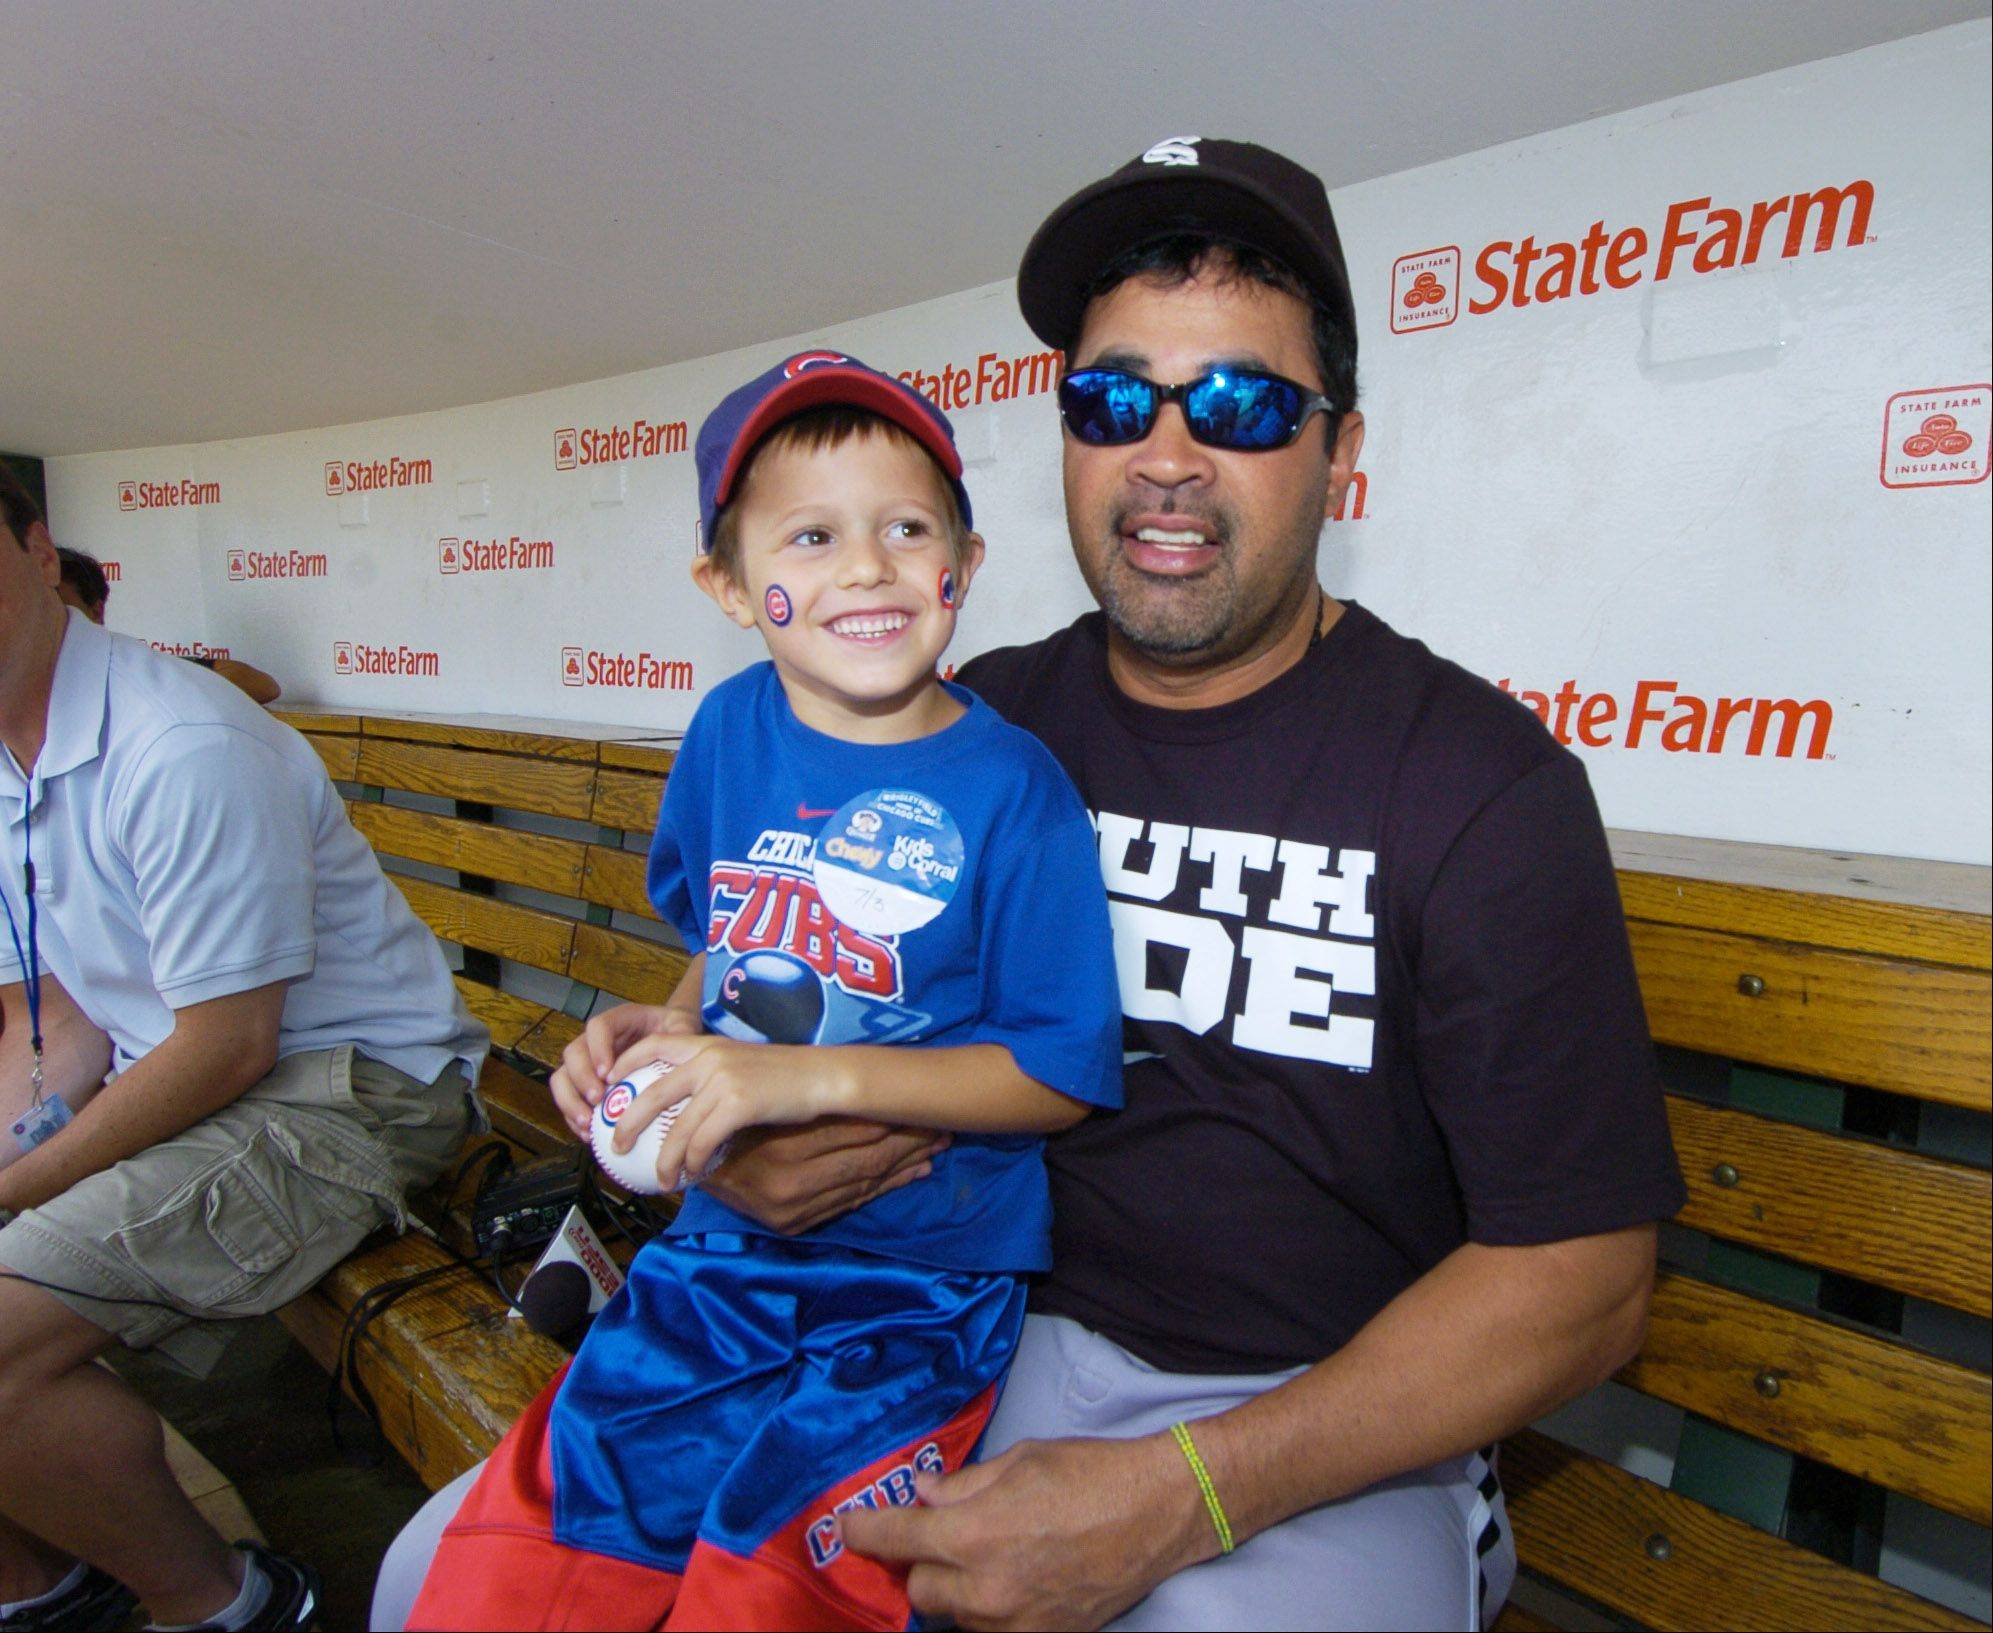 White Sox Manager Ozzie Guillen stops his interview with the media to have his photo taken with Trevor Anglin, 6, of Carterville, Ill. before Sunday's game at Wrigley Field. Anglin was sent into the dugout by Cubs General Manager Jim Hendry as a gentle prank on Guillen.